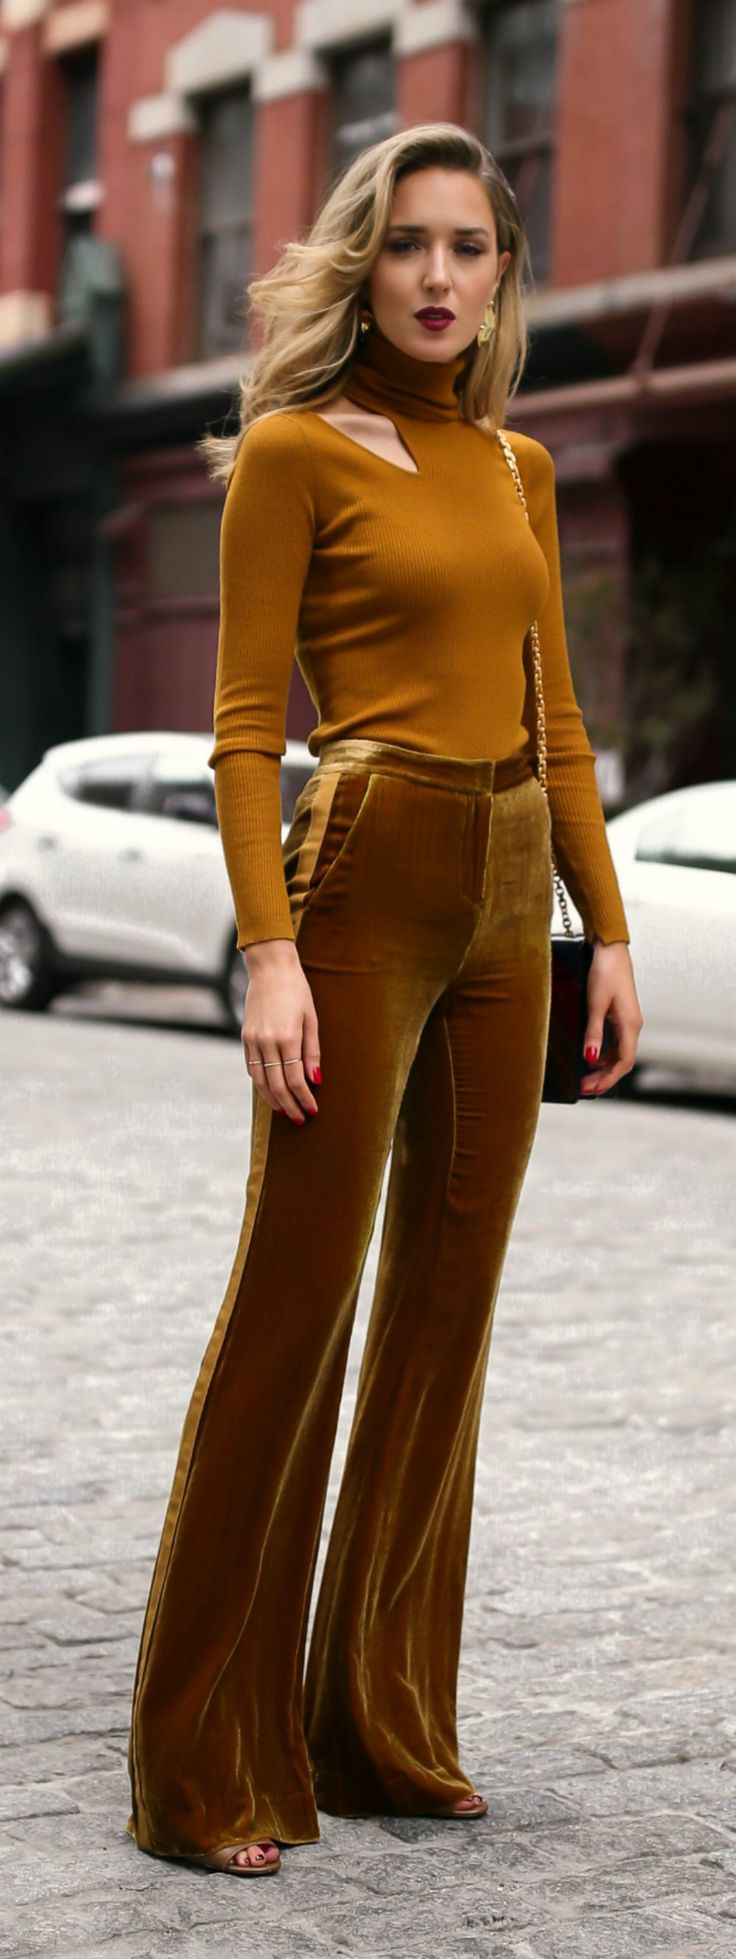 Marigold cut out long sleeve turtleneck, velvet gold tuxedo striped wide leg trousers, multi jewel toned handbag and sculptural gold earrings {ALC, Tory Burch, Veronica Beard, Amber Sceats}